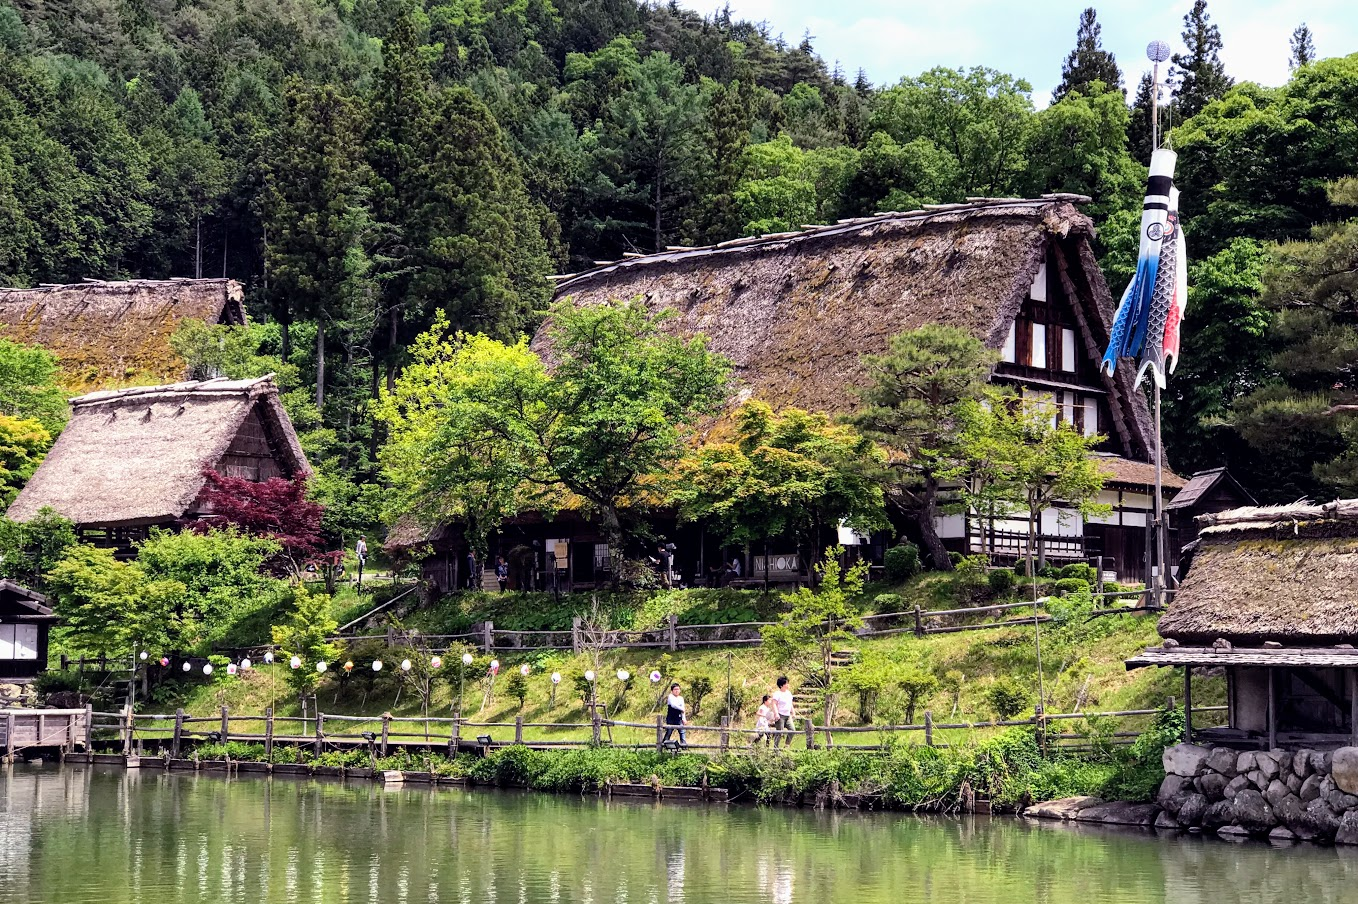 The house with a steep rafter roof in Hida village